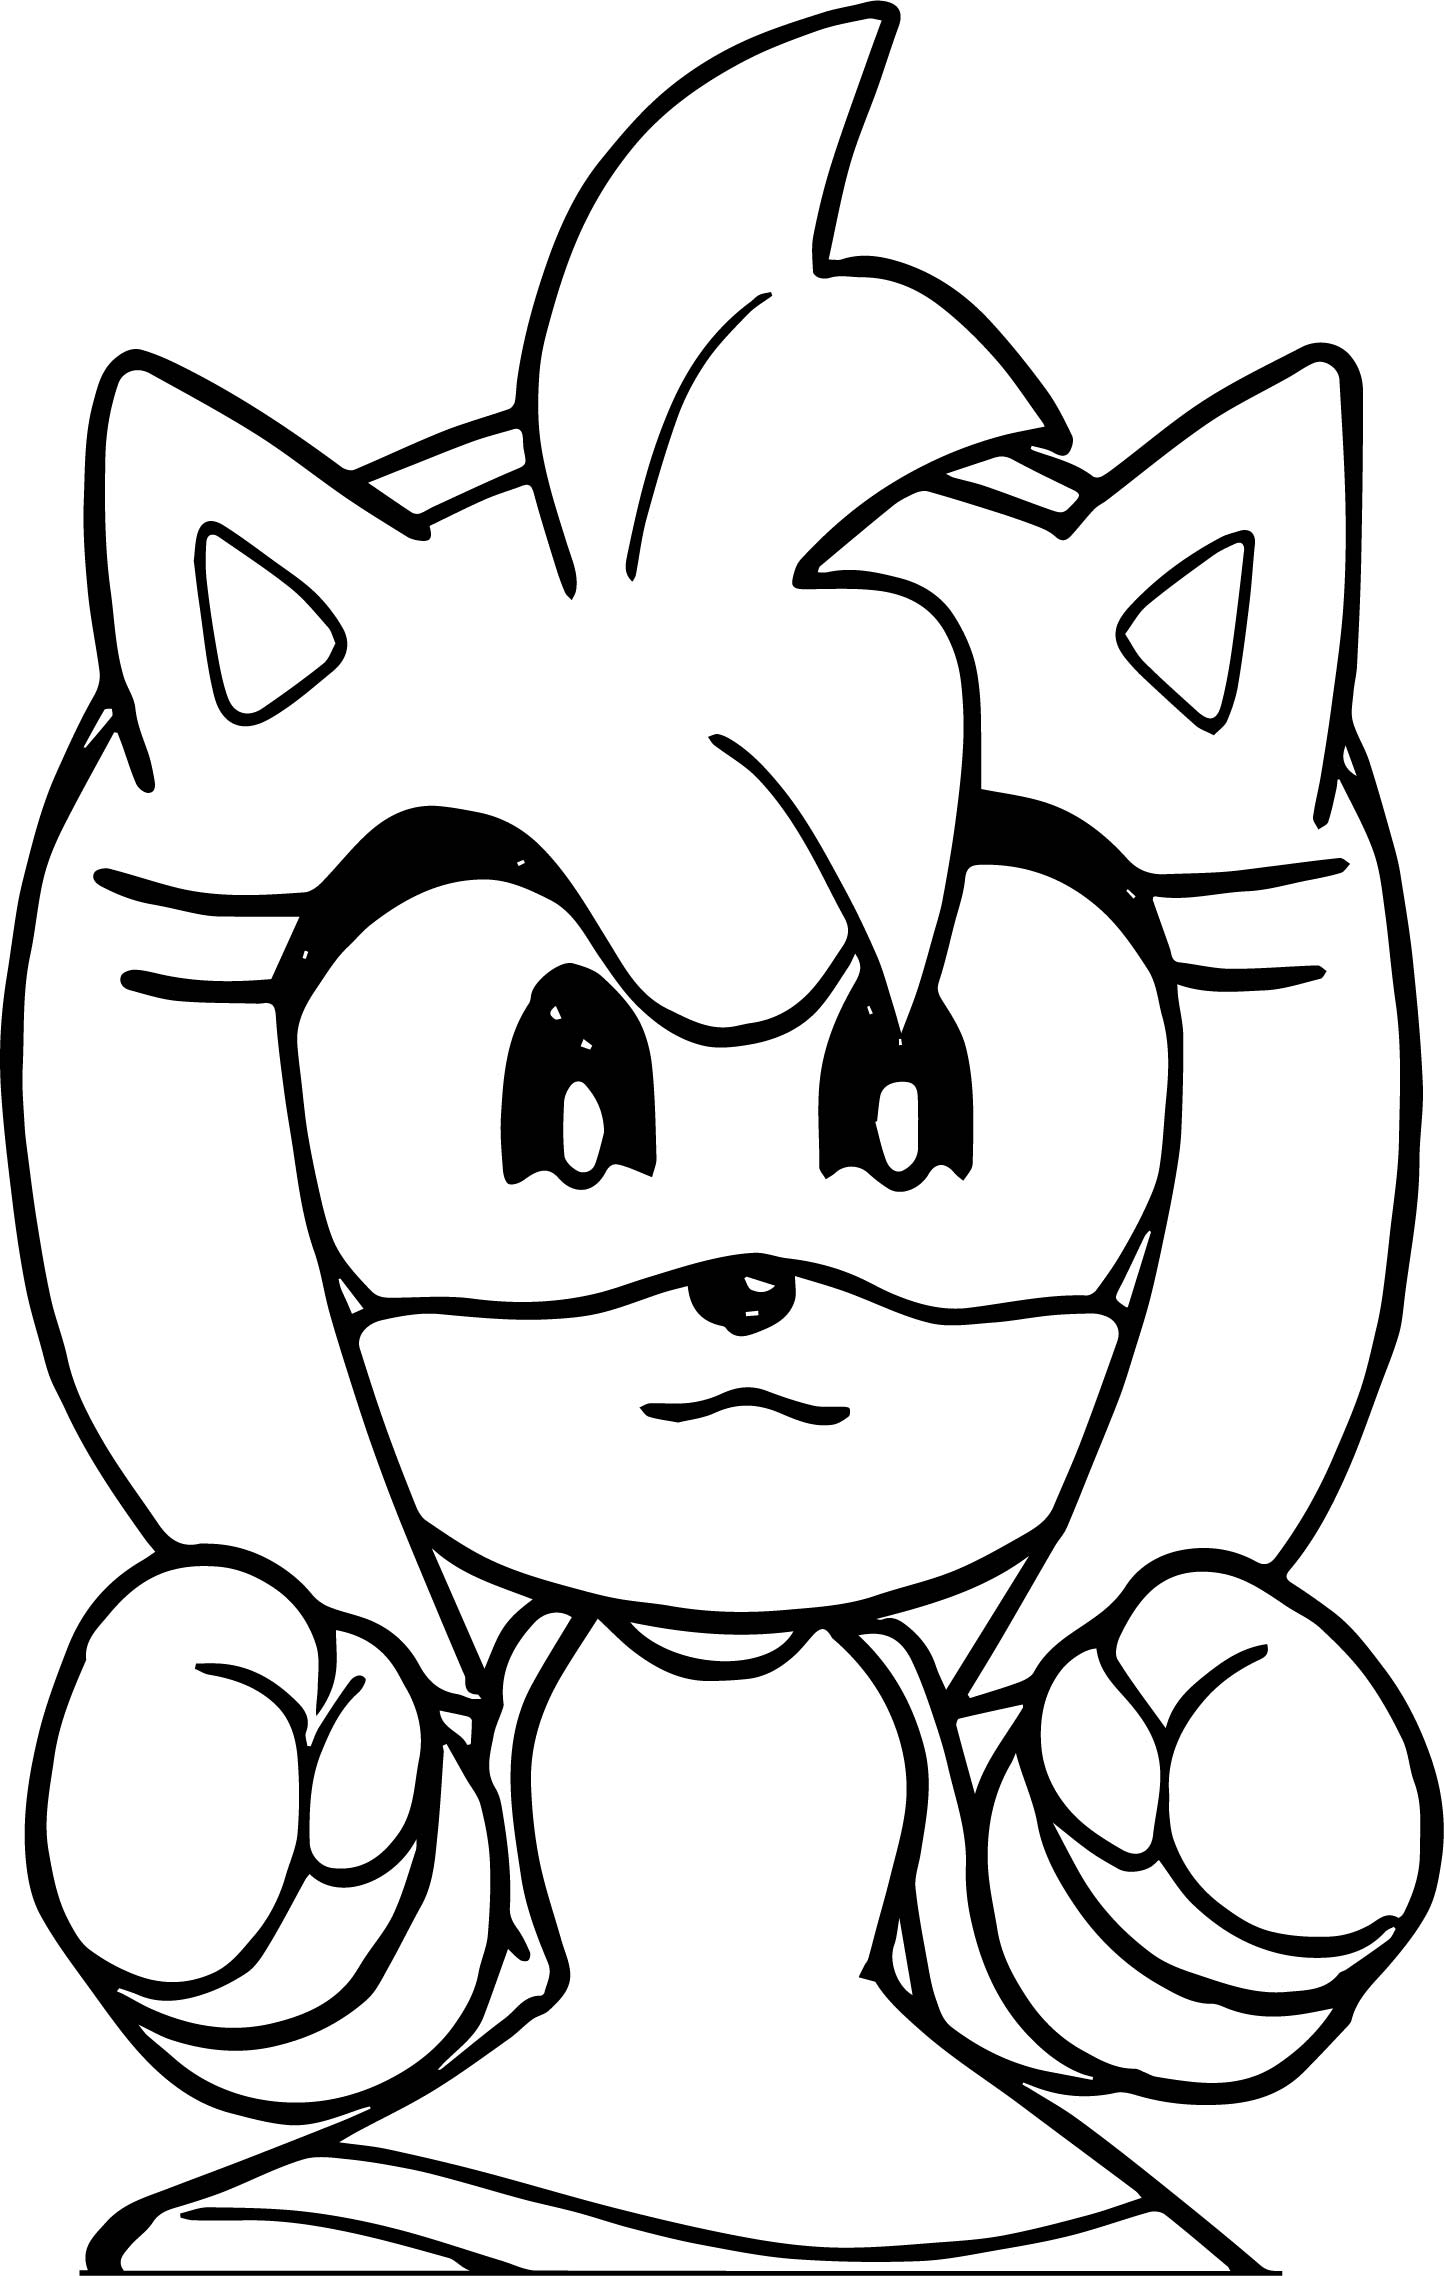 Mini Amy Rose Coloring Page | Wecoloringpage.com